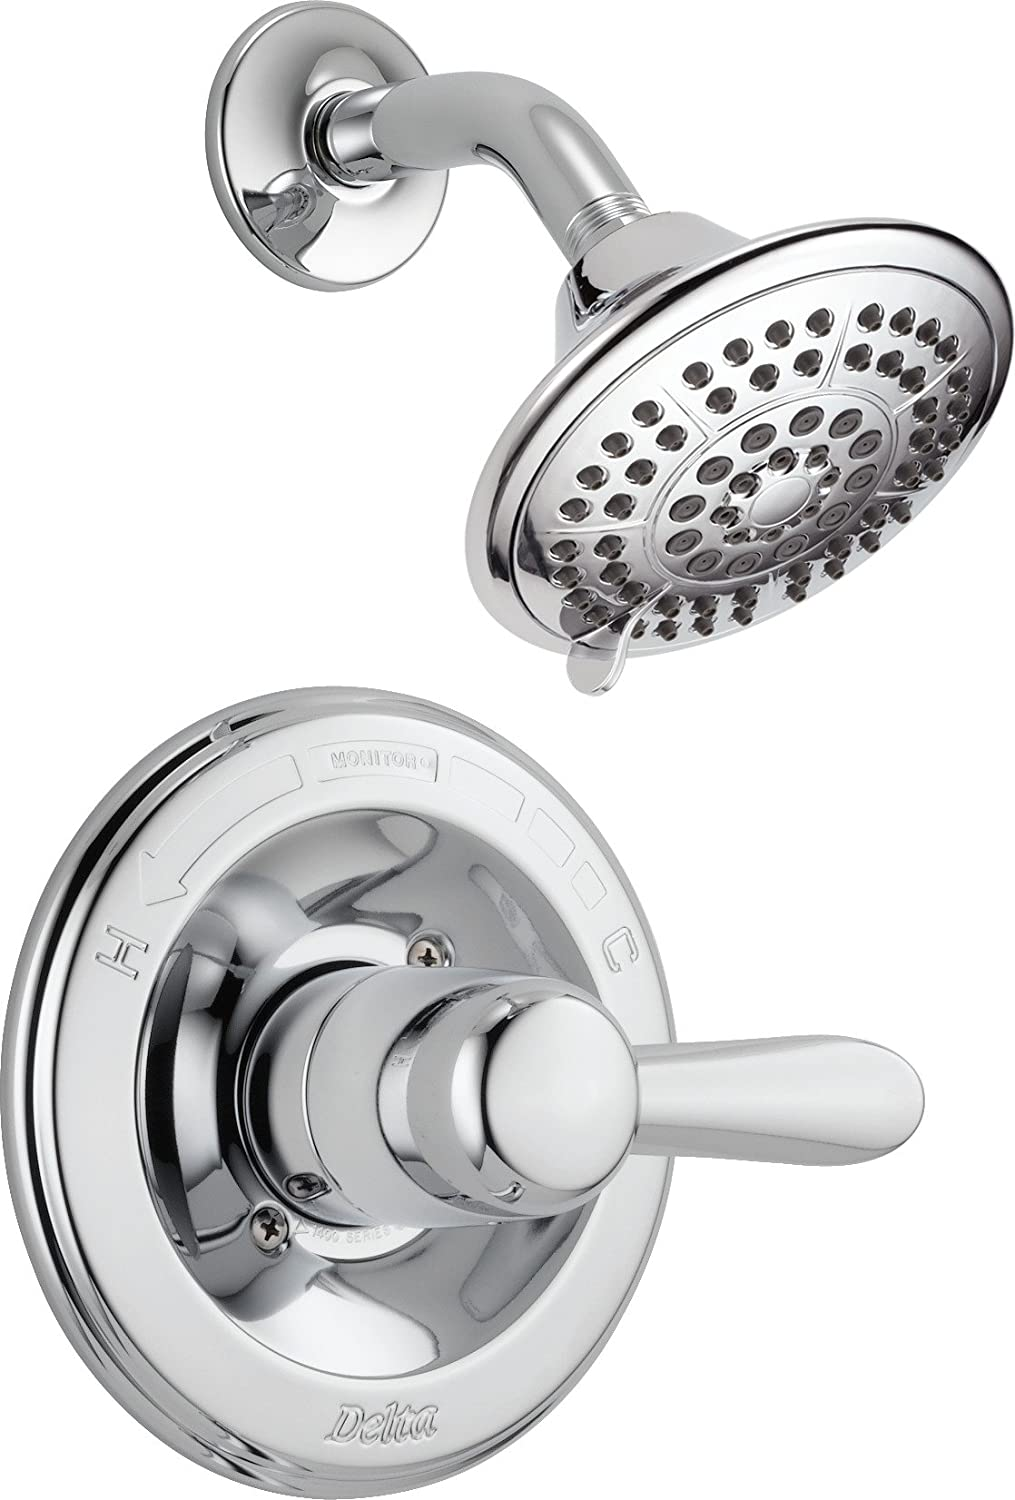 Delta Faucet Lahara 14 Series Single-Function Shower Trim Kit with 5-Spray Touch-Clean Shower Head, Chrome T14238 (Valve Not Included)